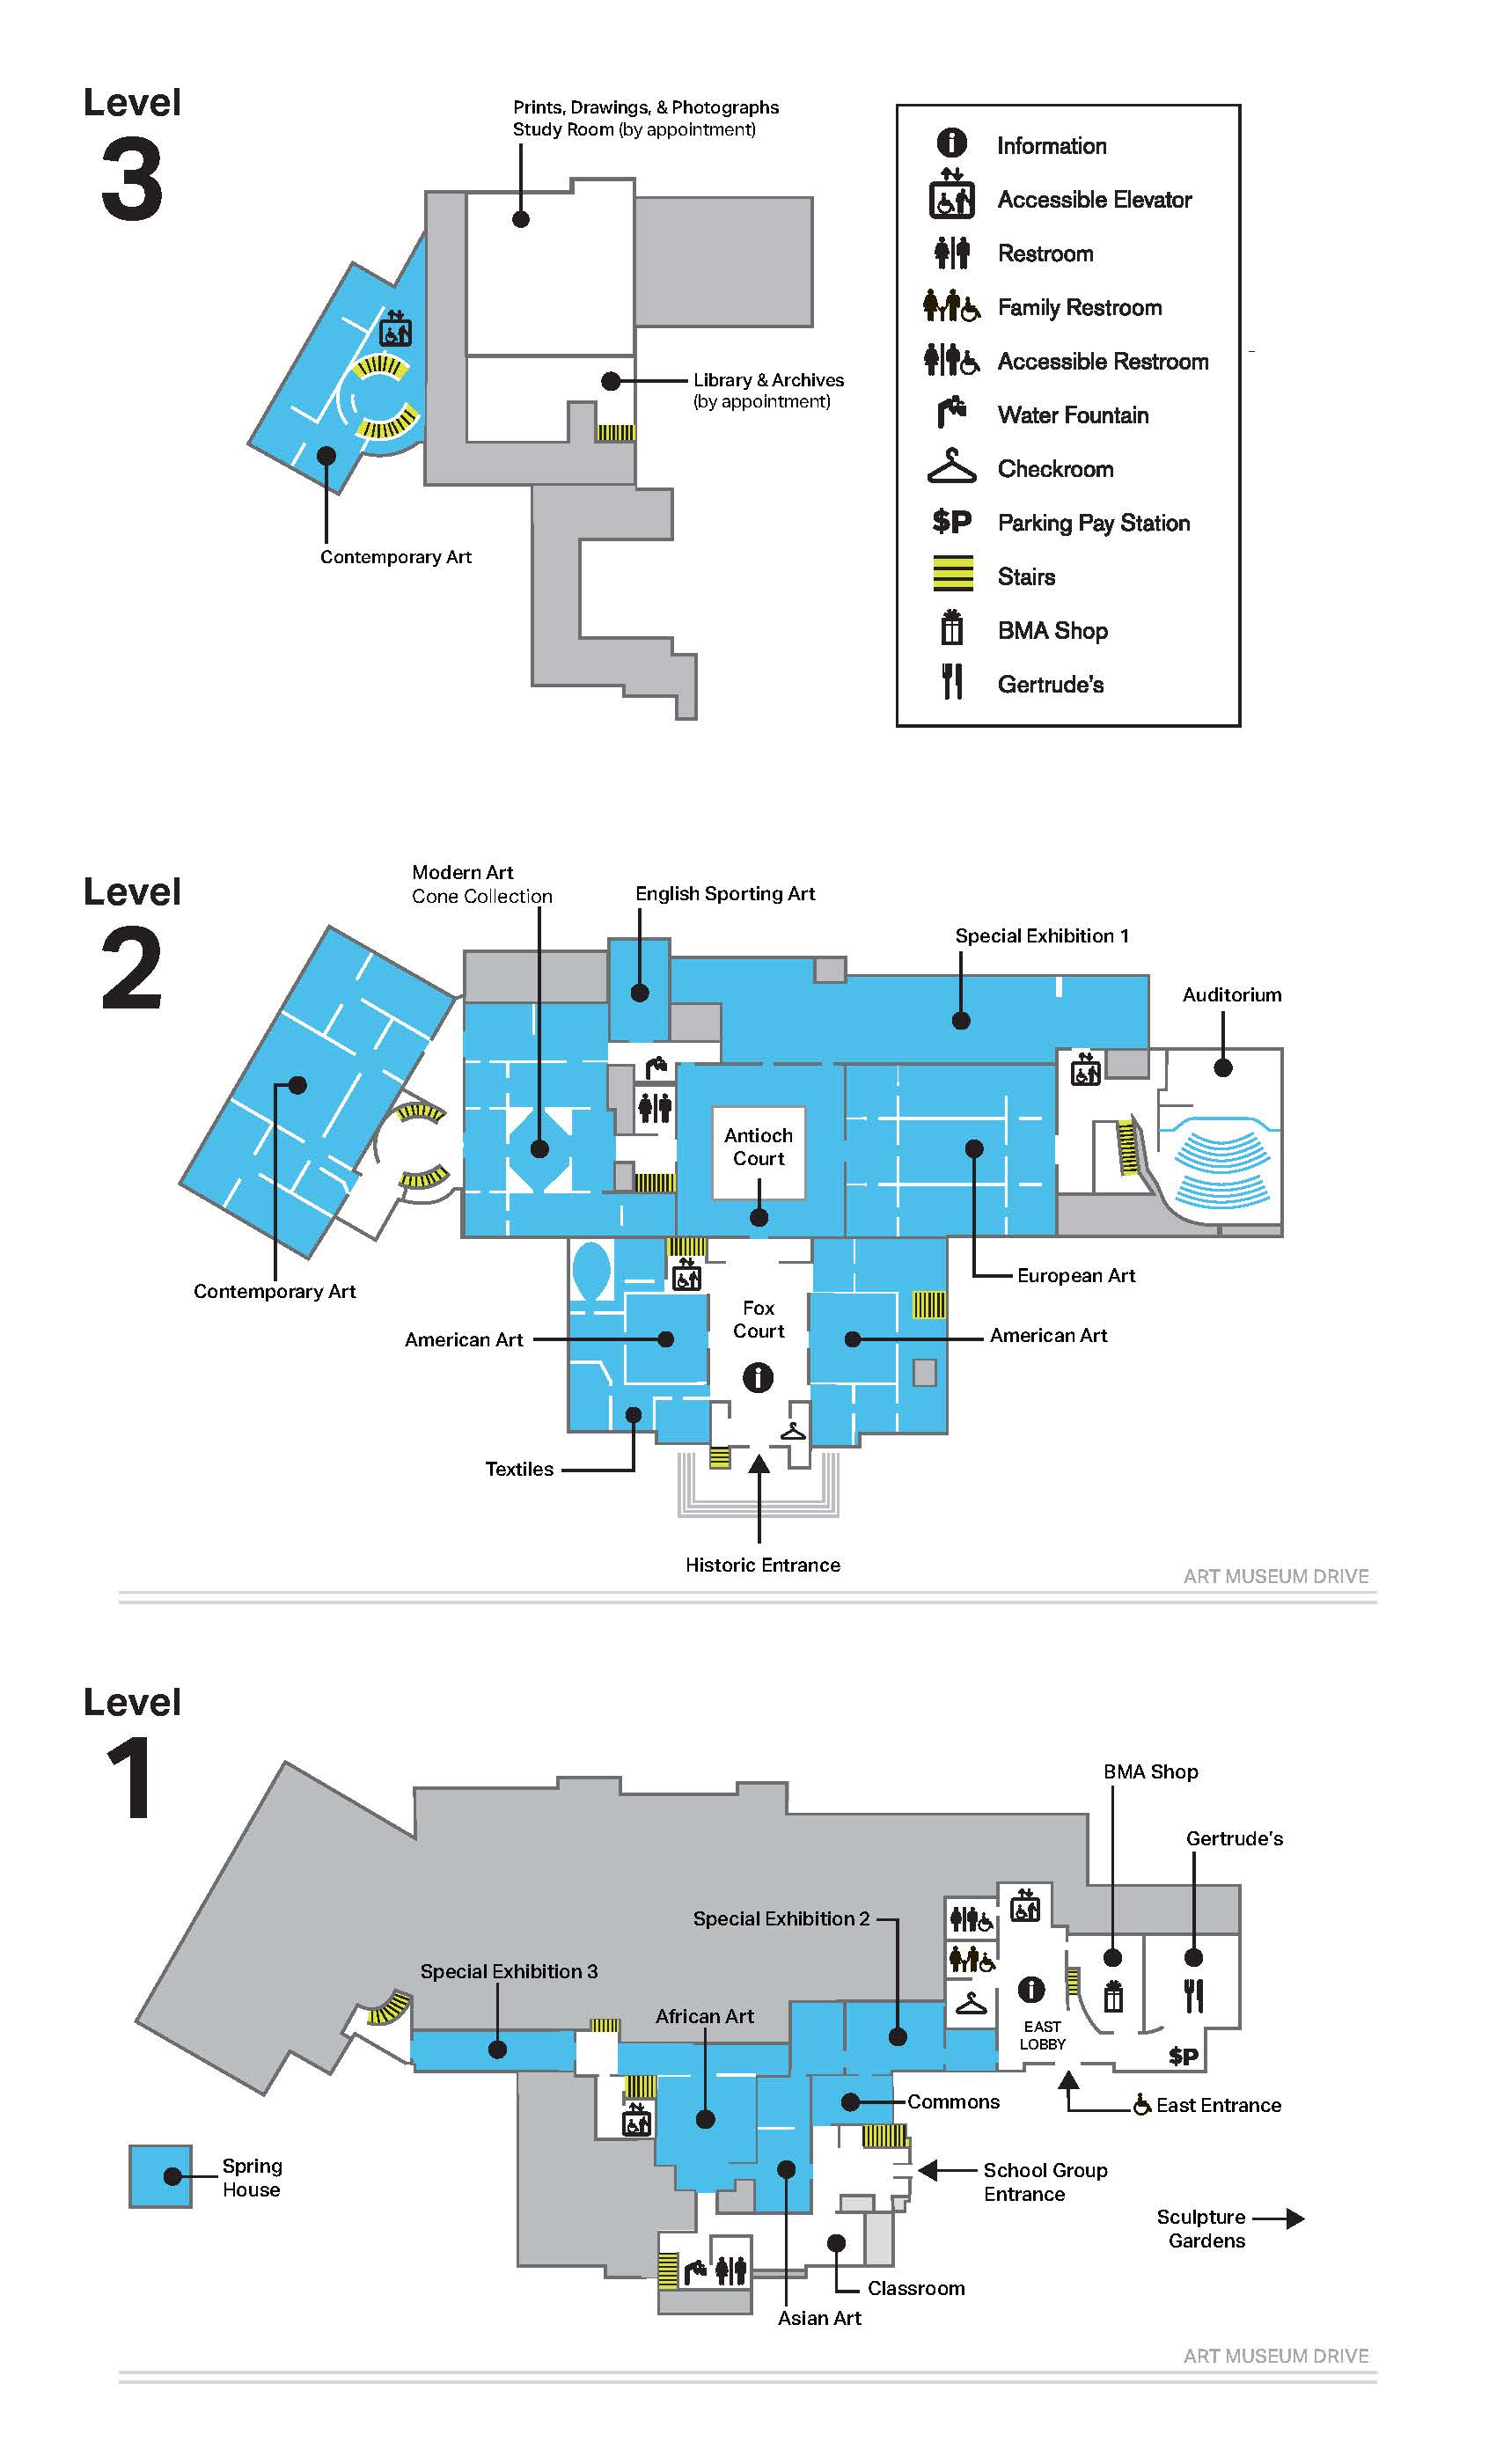 2018 BMA Floorplan